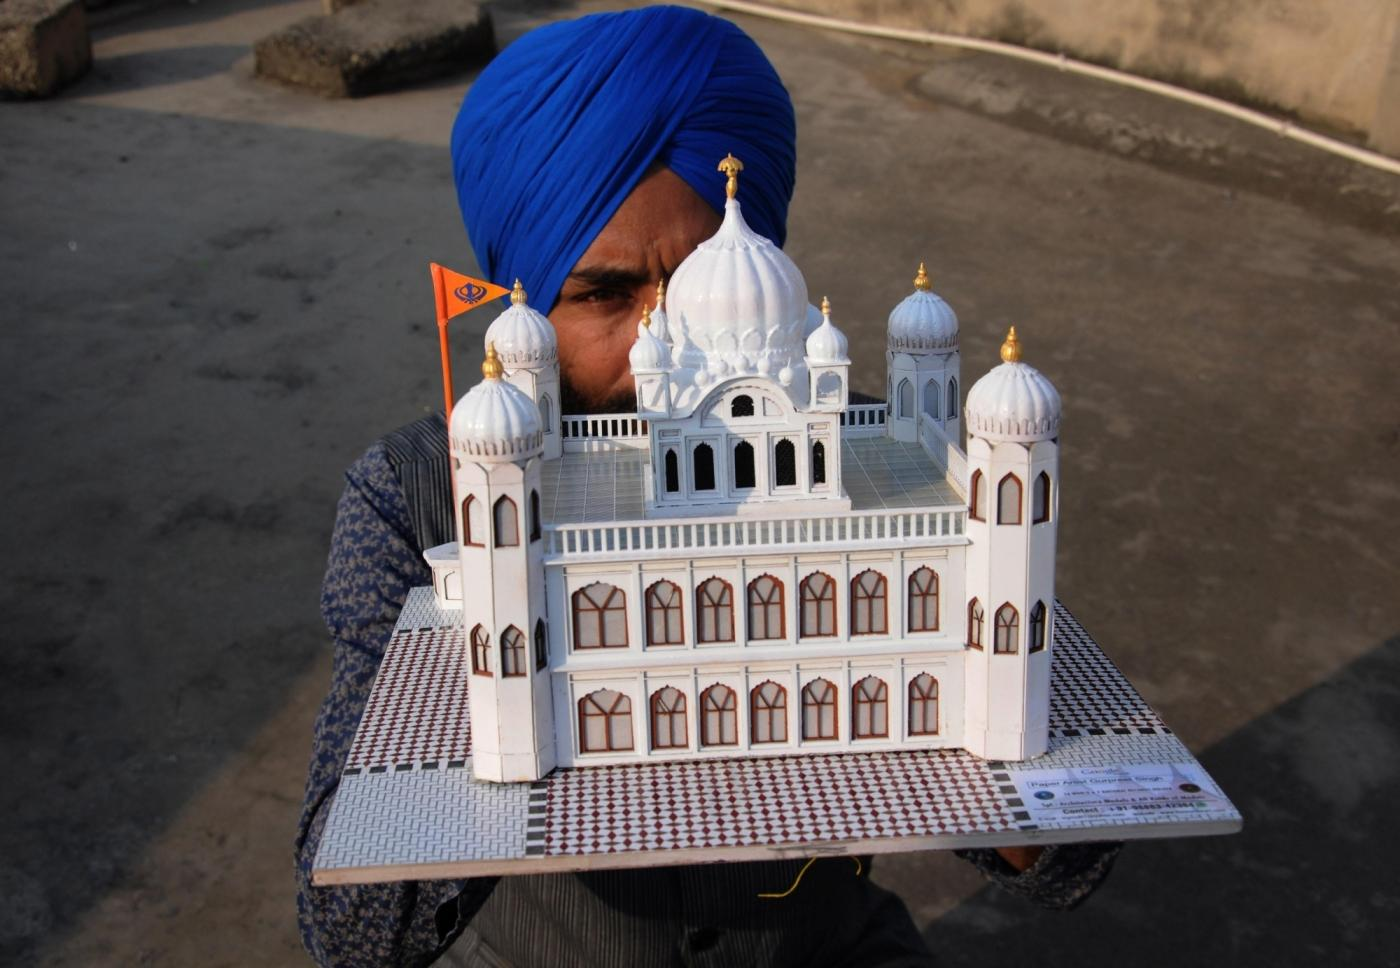 Amritsar: Paper artist Gurpreet Singh shows a model of Kartarpur Sahib, the final resting place of Guru Nank Dev, created by him, on the eve of the first Sikh Guru's birth anniversary, in Amritsar on Nov 22, 2018. (Photo: IANS) by .